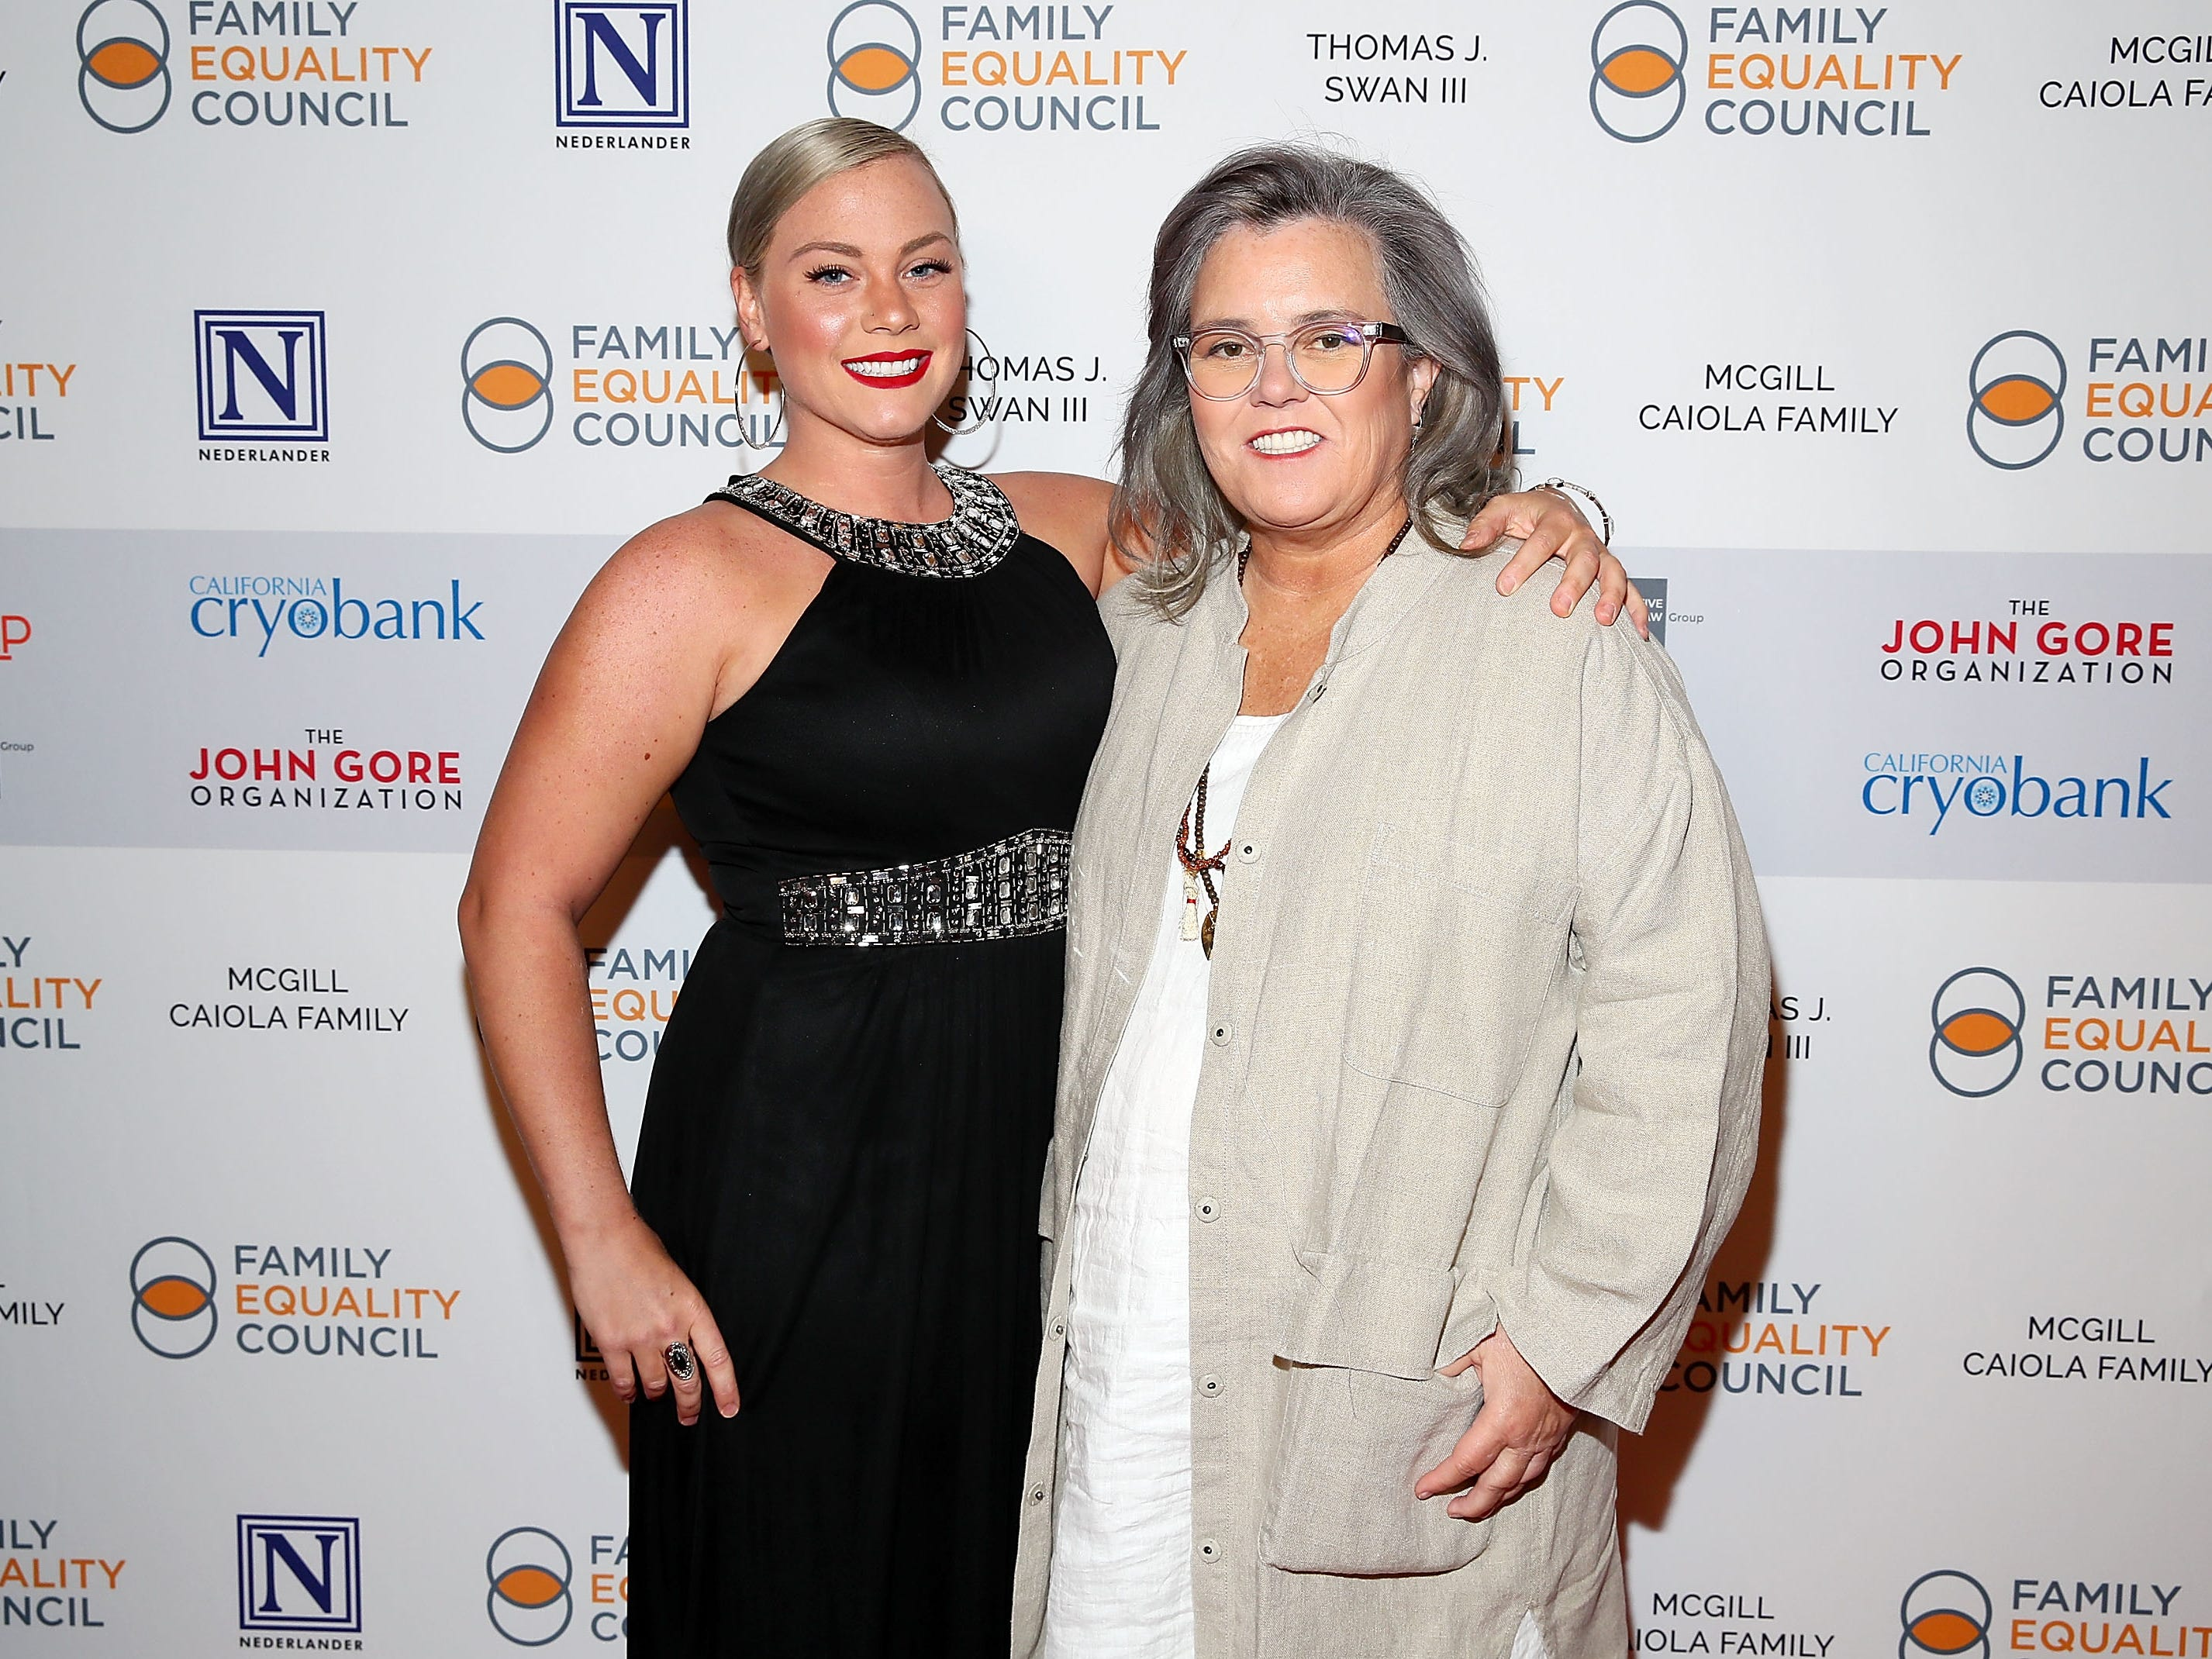 Meet Rosie O'Donnell's new fiancee, 33-year-old police officer Elizabeth Rooney